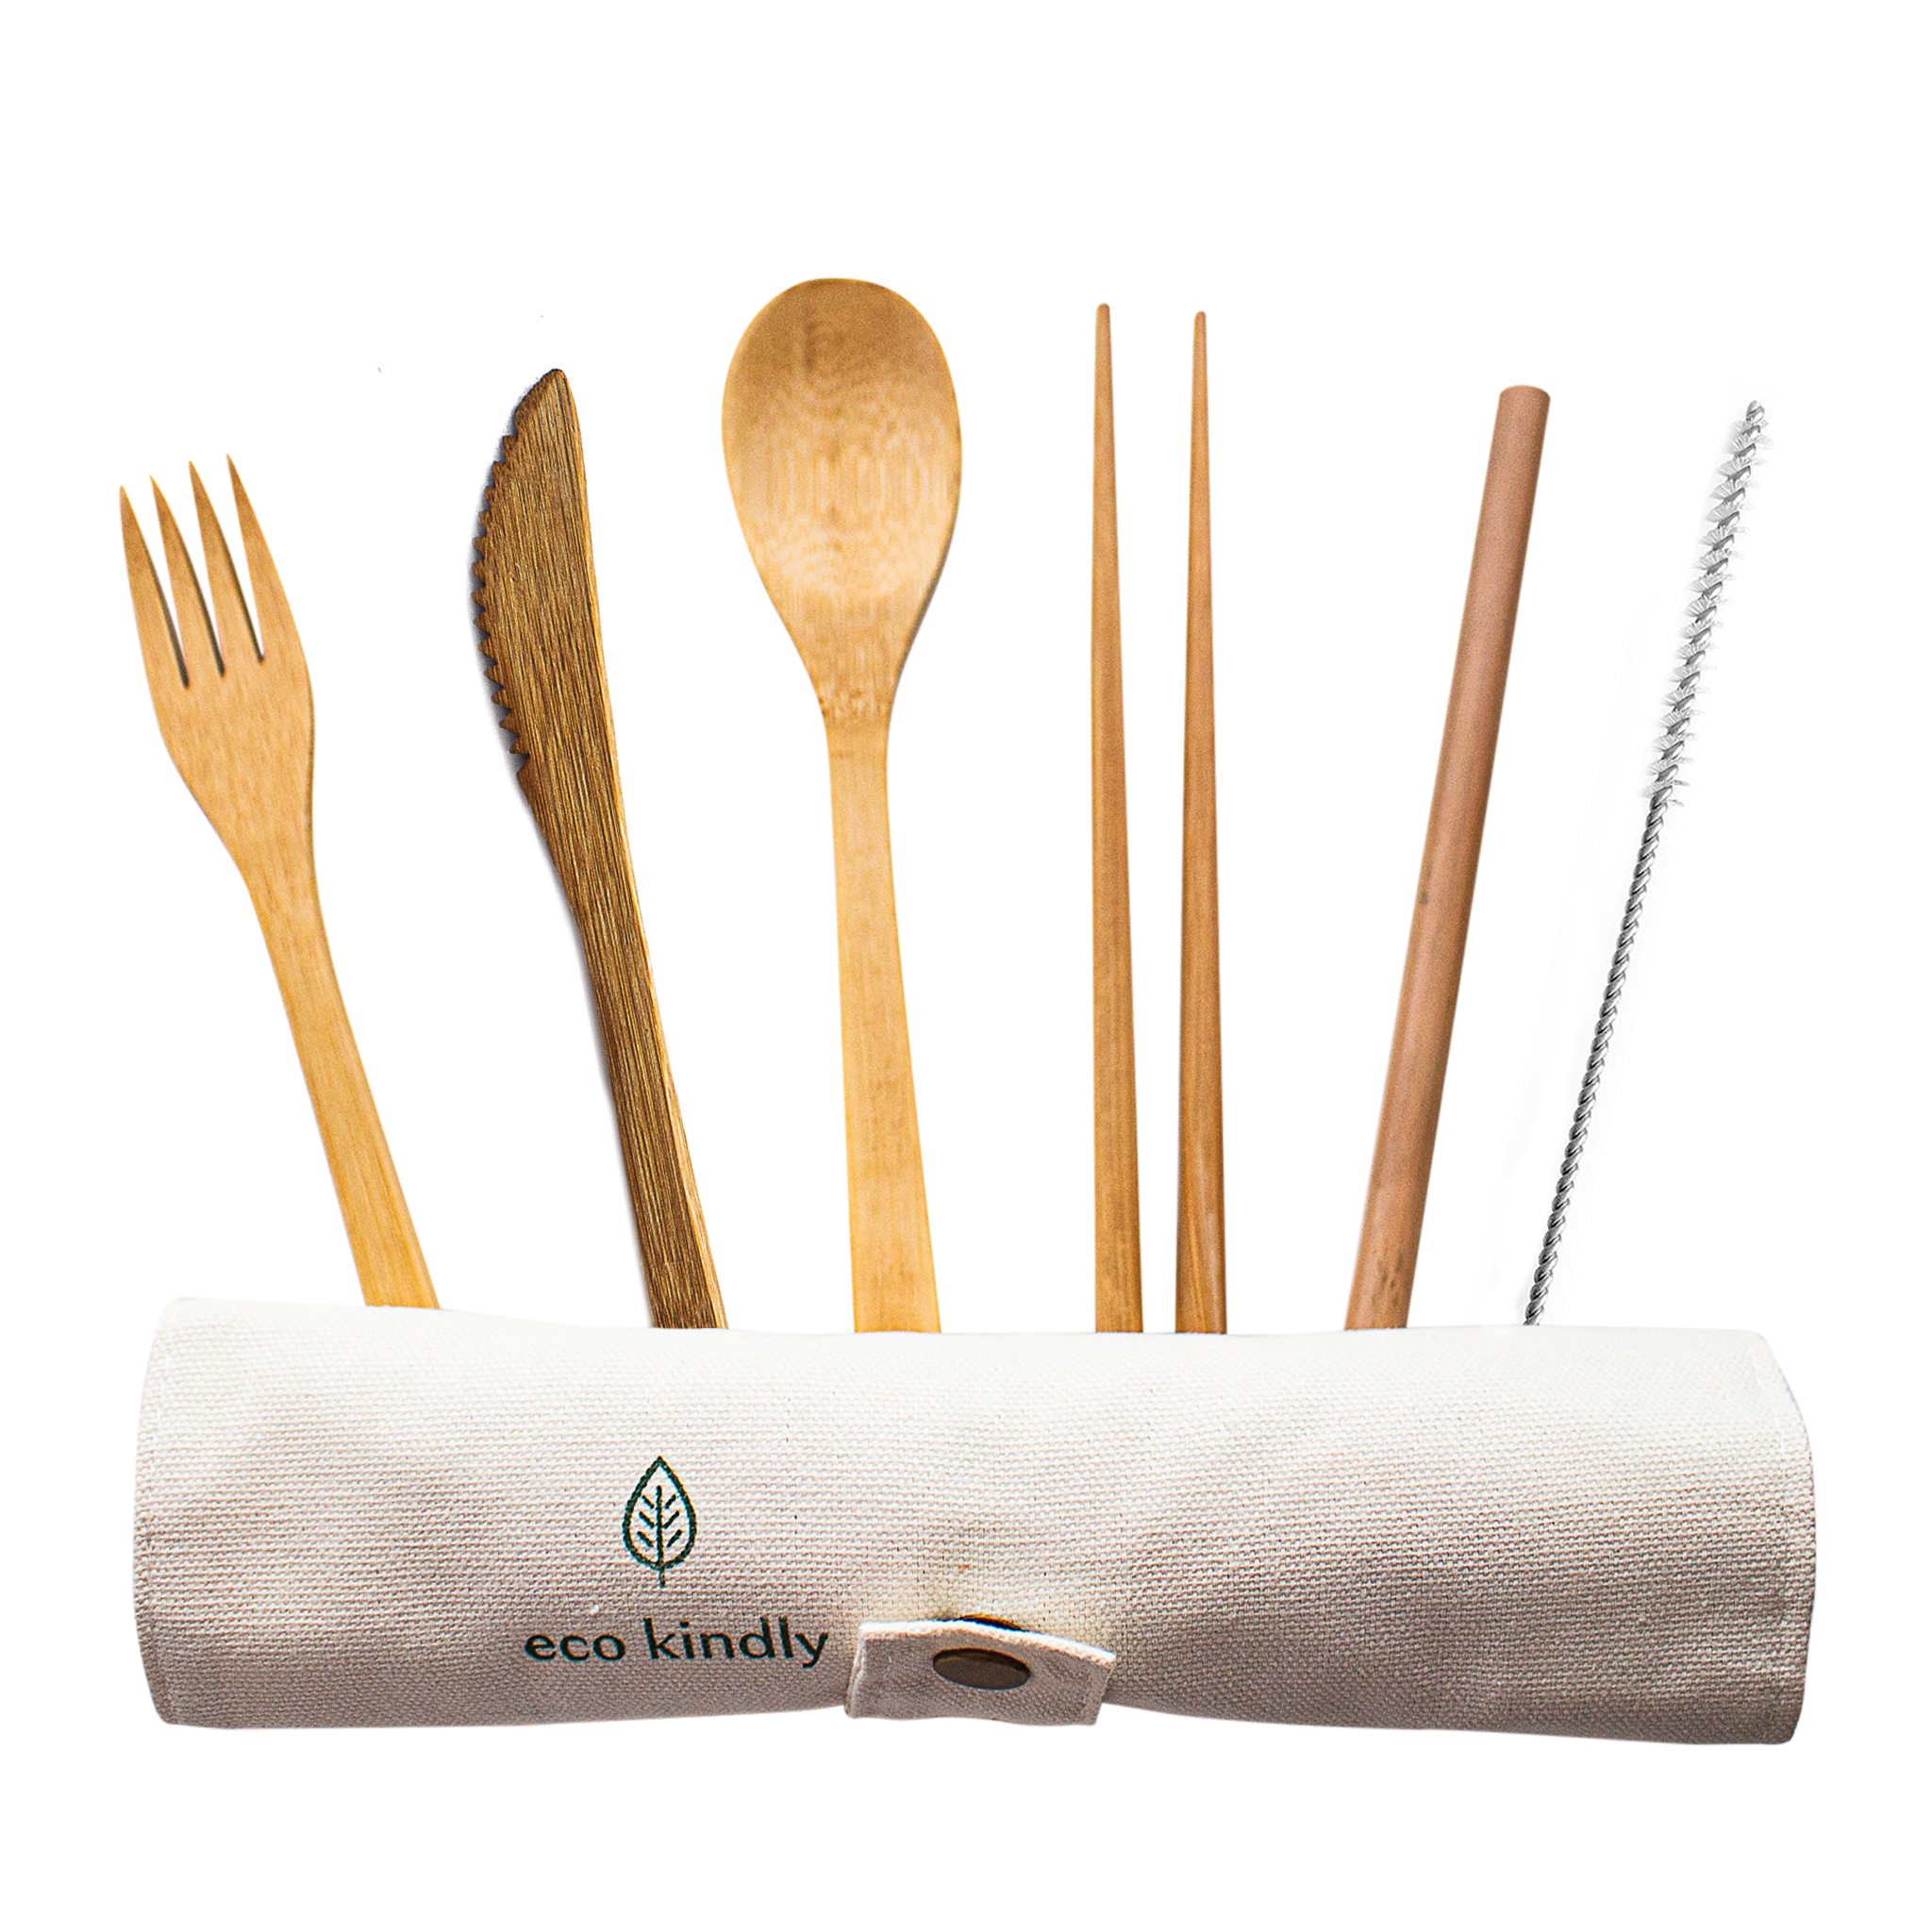 Reusable Bamboo Cutlery Set - Eco Kindly